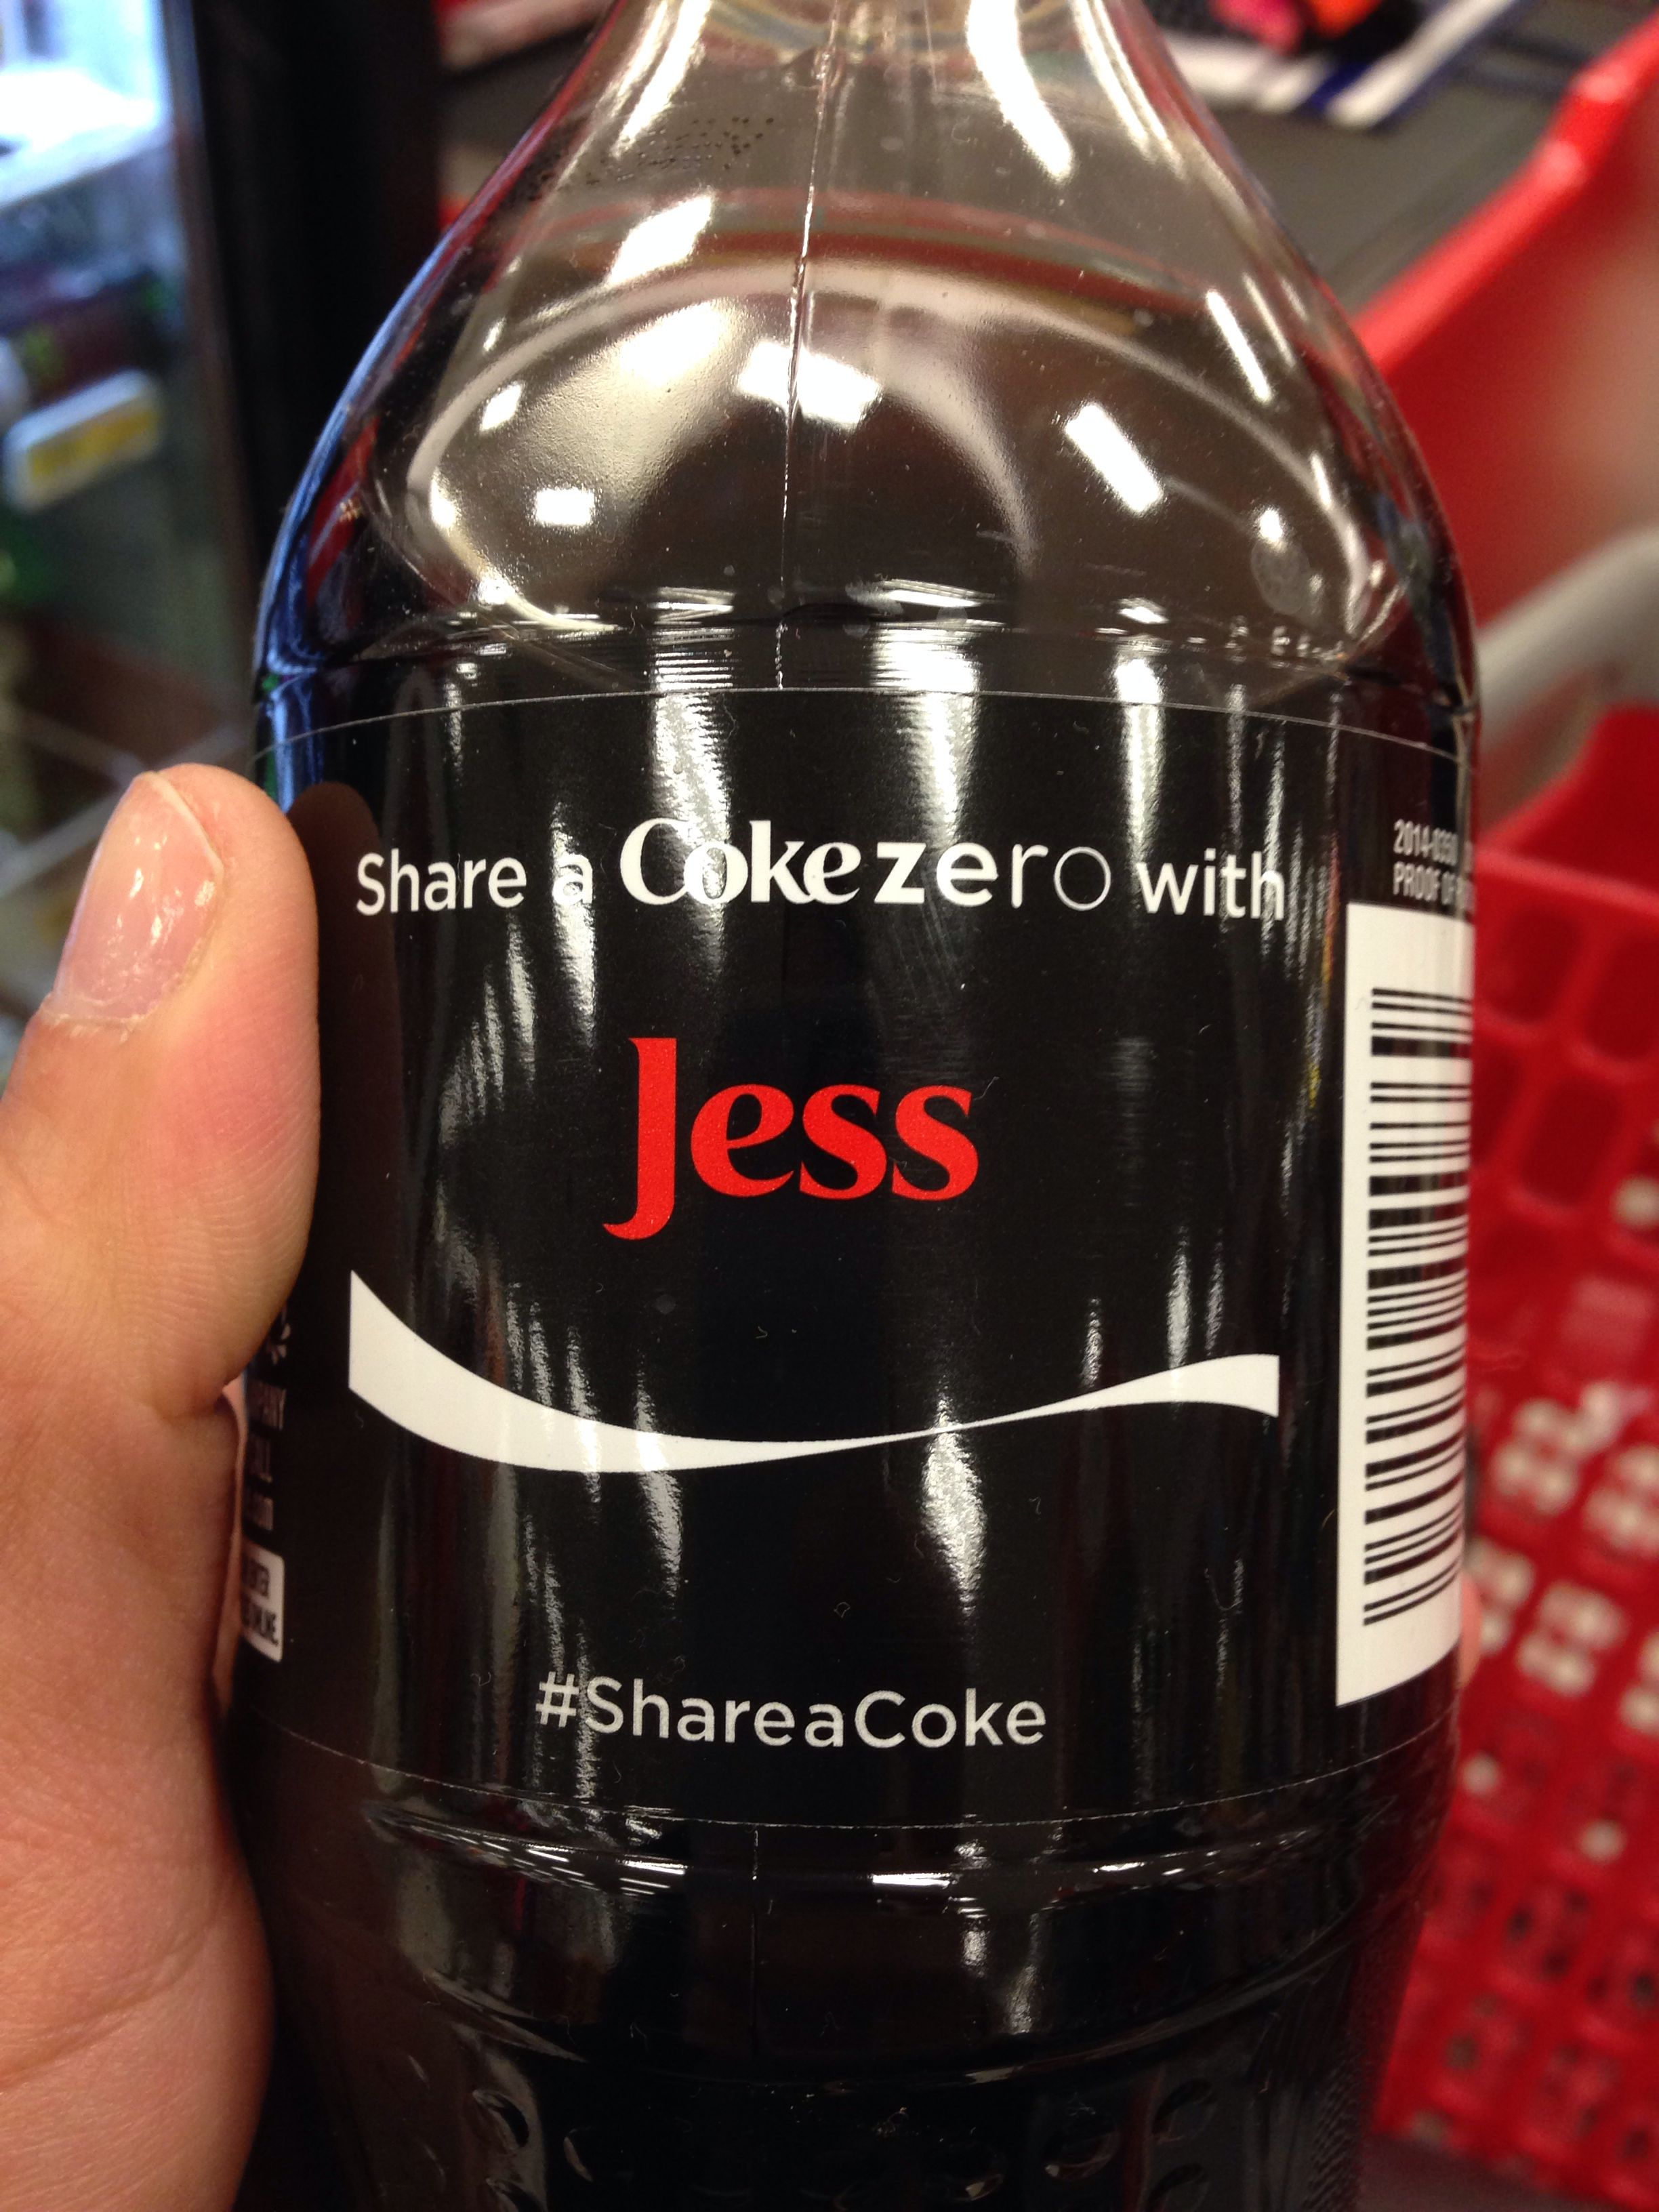 Damn it, coke! Your genius marketing got to me!!